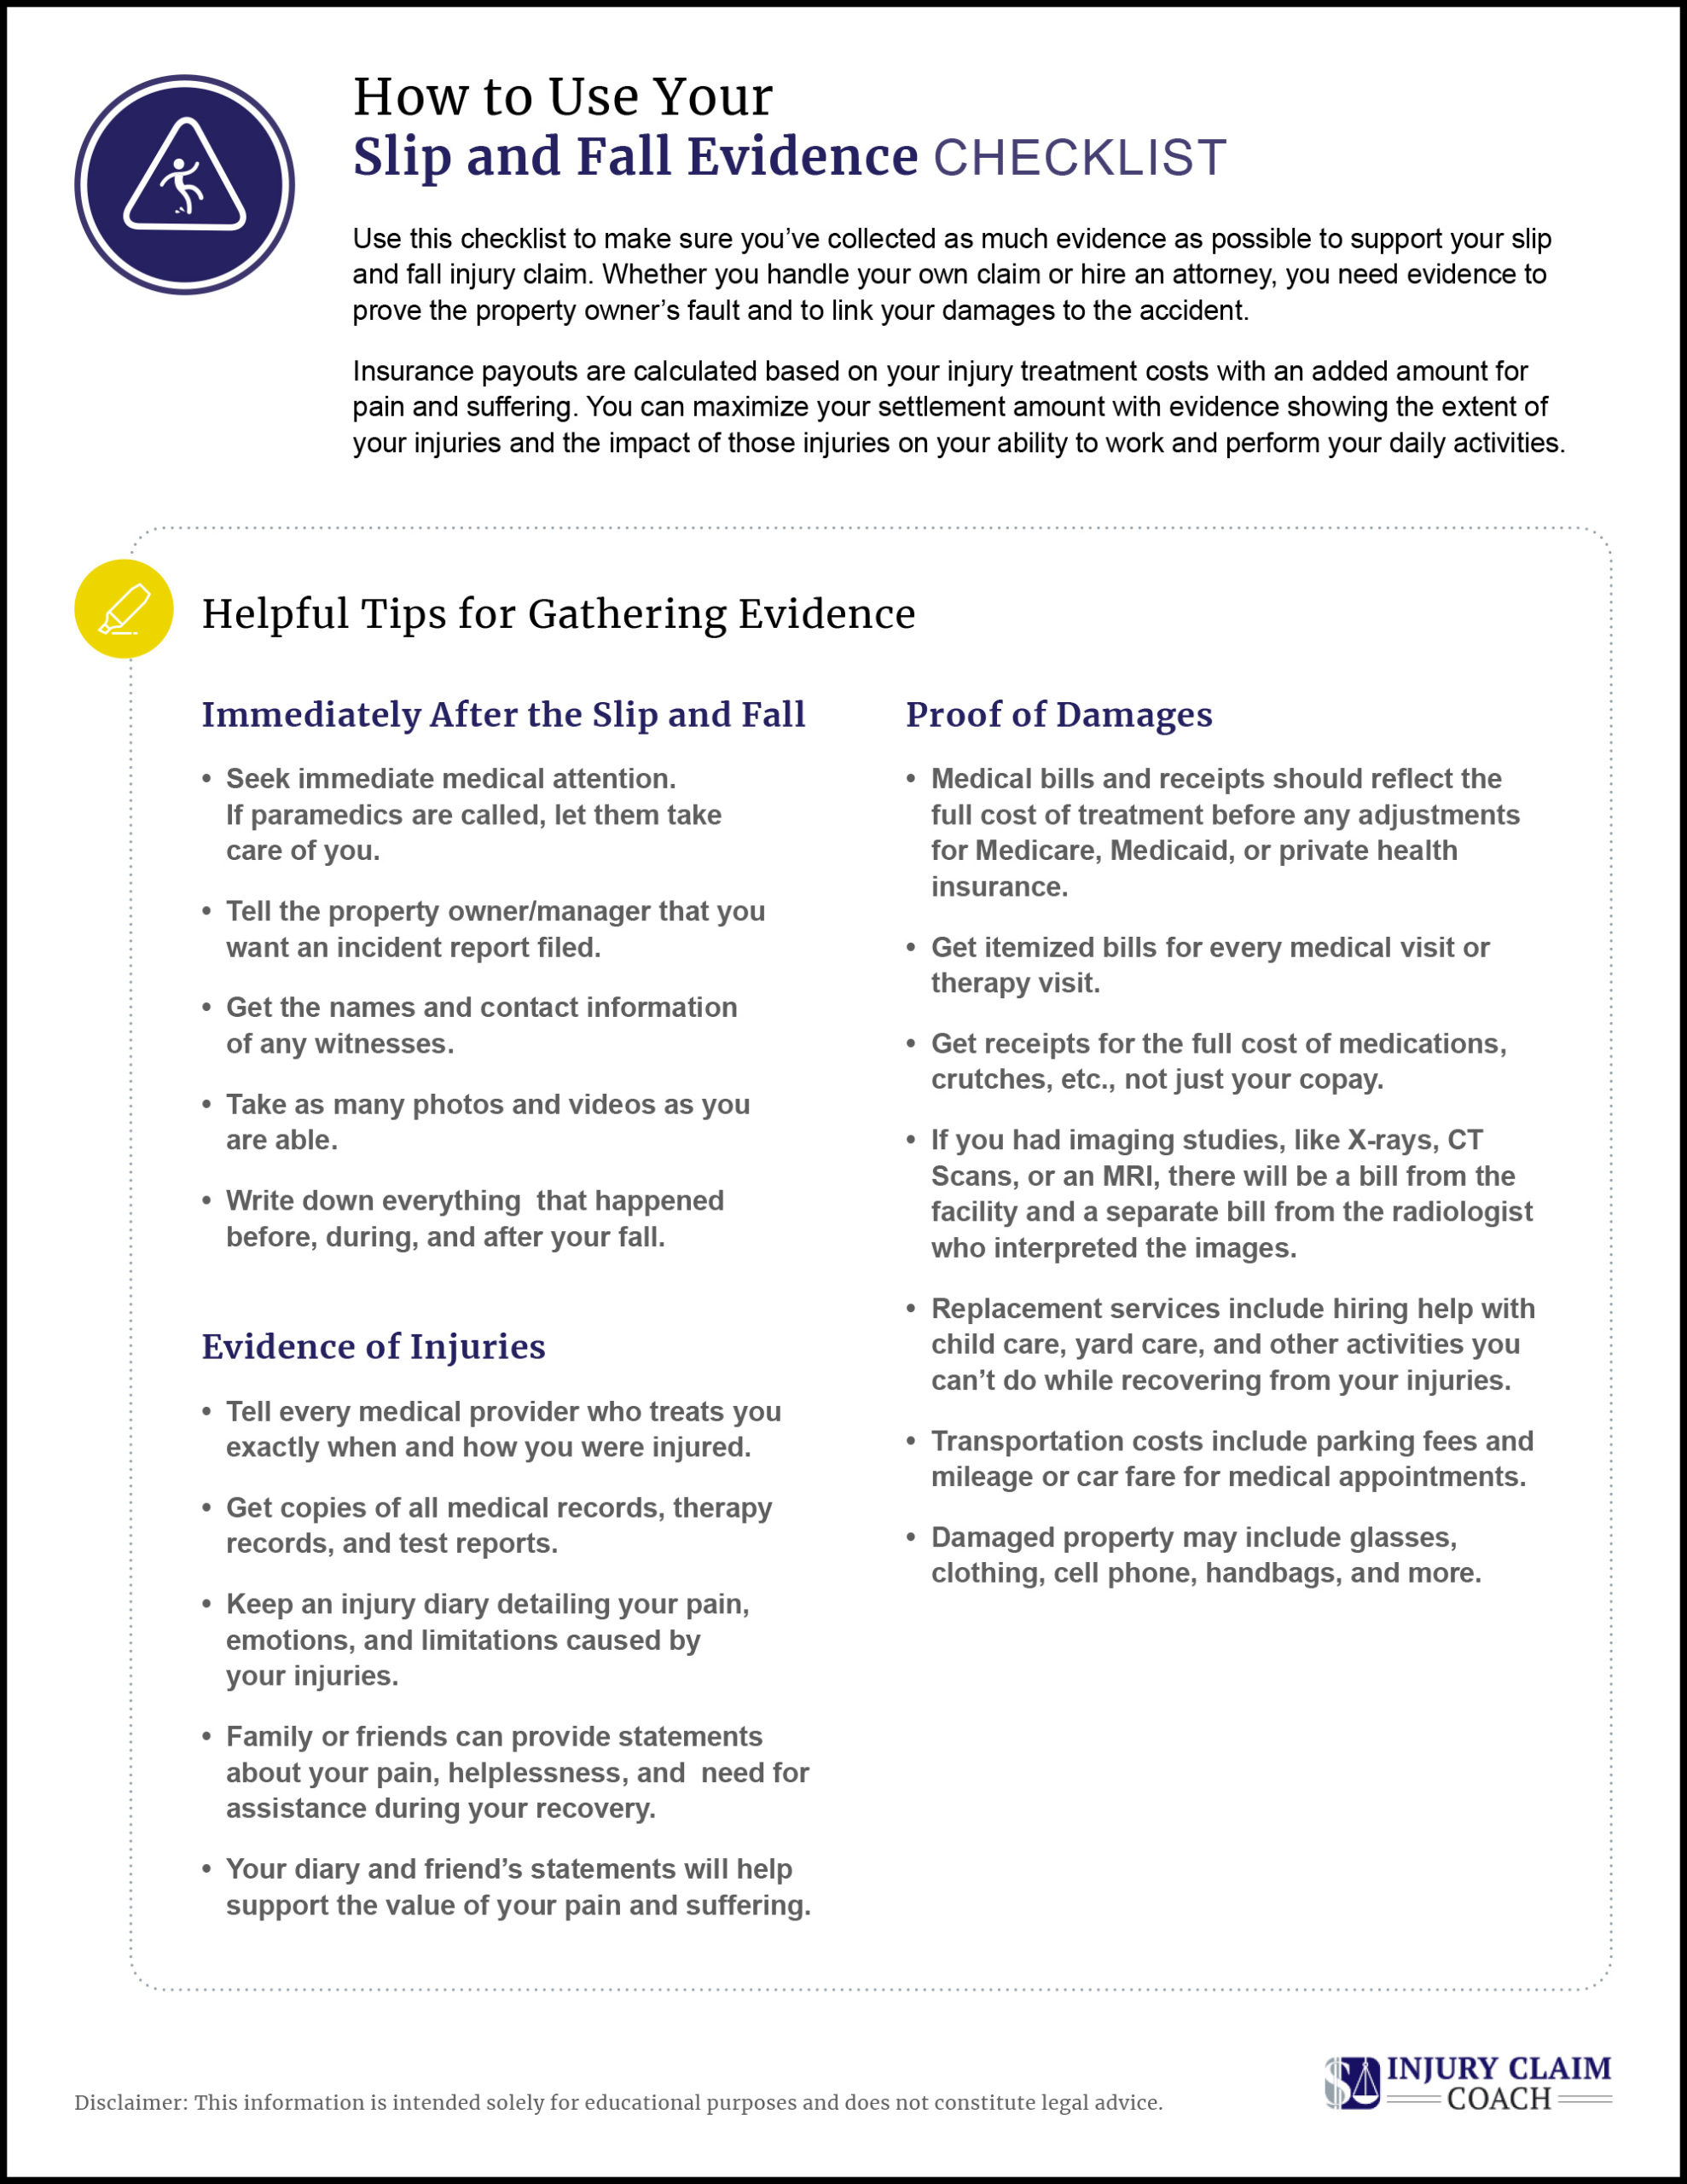 Slip and Fall Evidence Checklist Tips